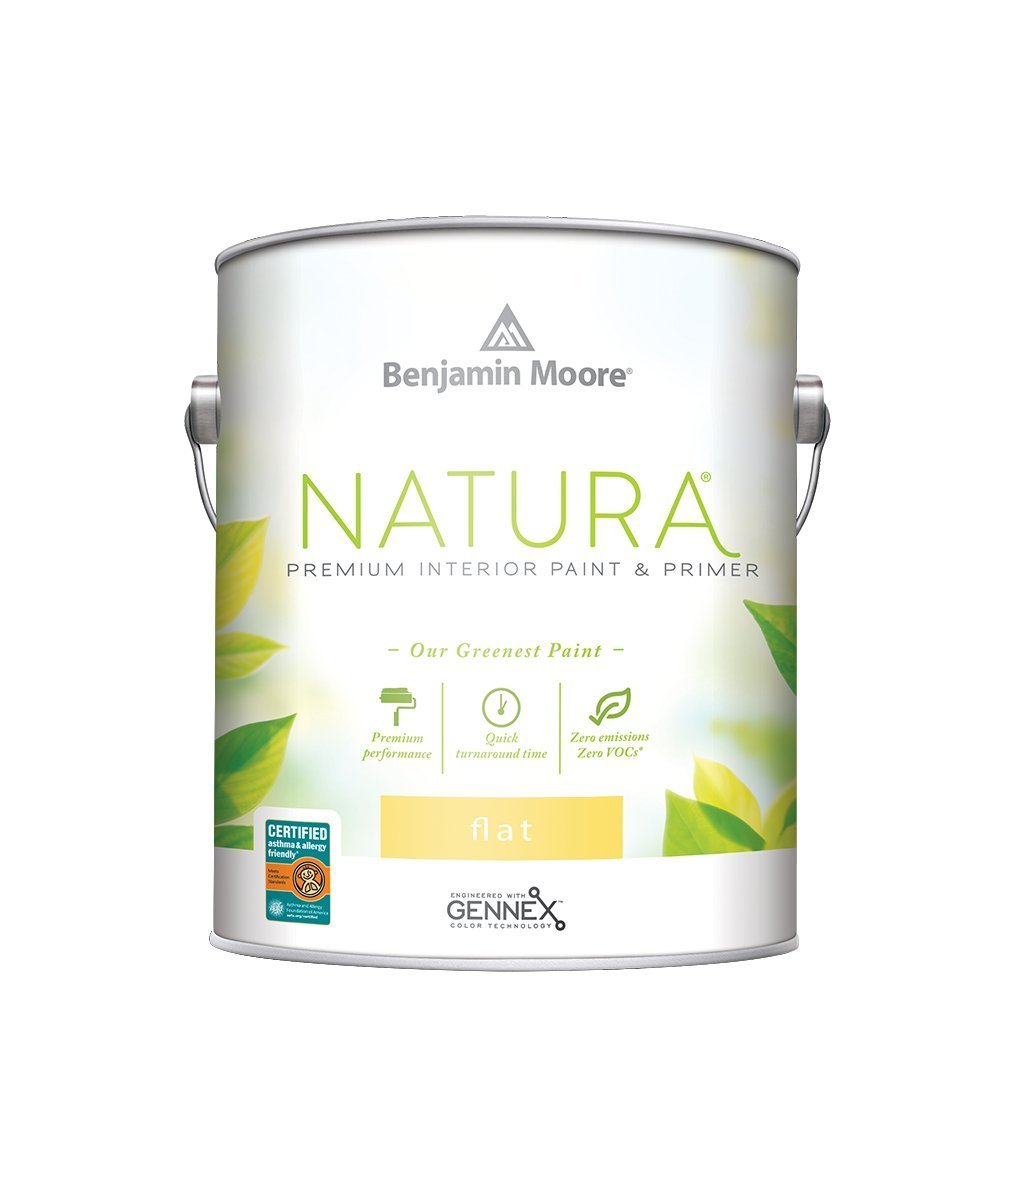 Benjamin Moore Flat Natura Paint available at Wallauer Paint & Design.